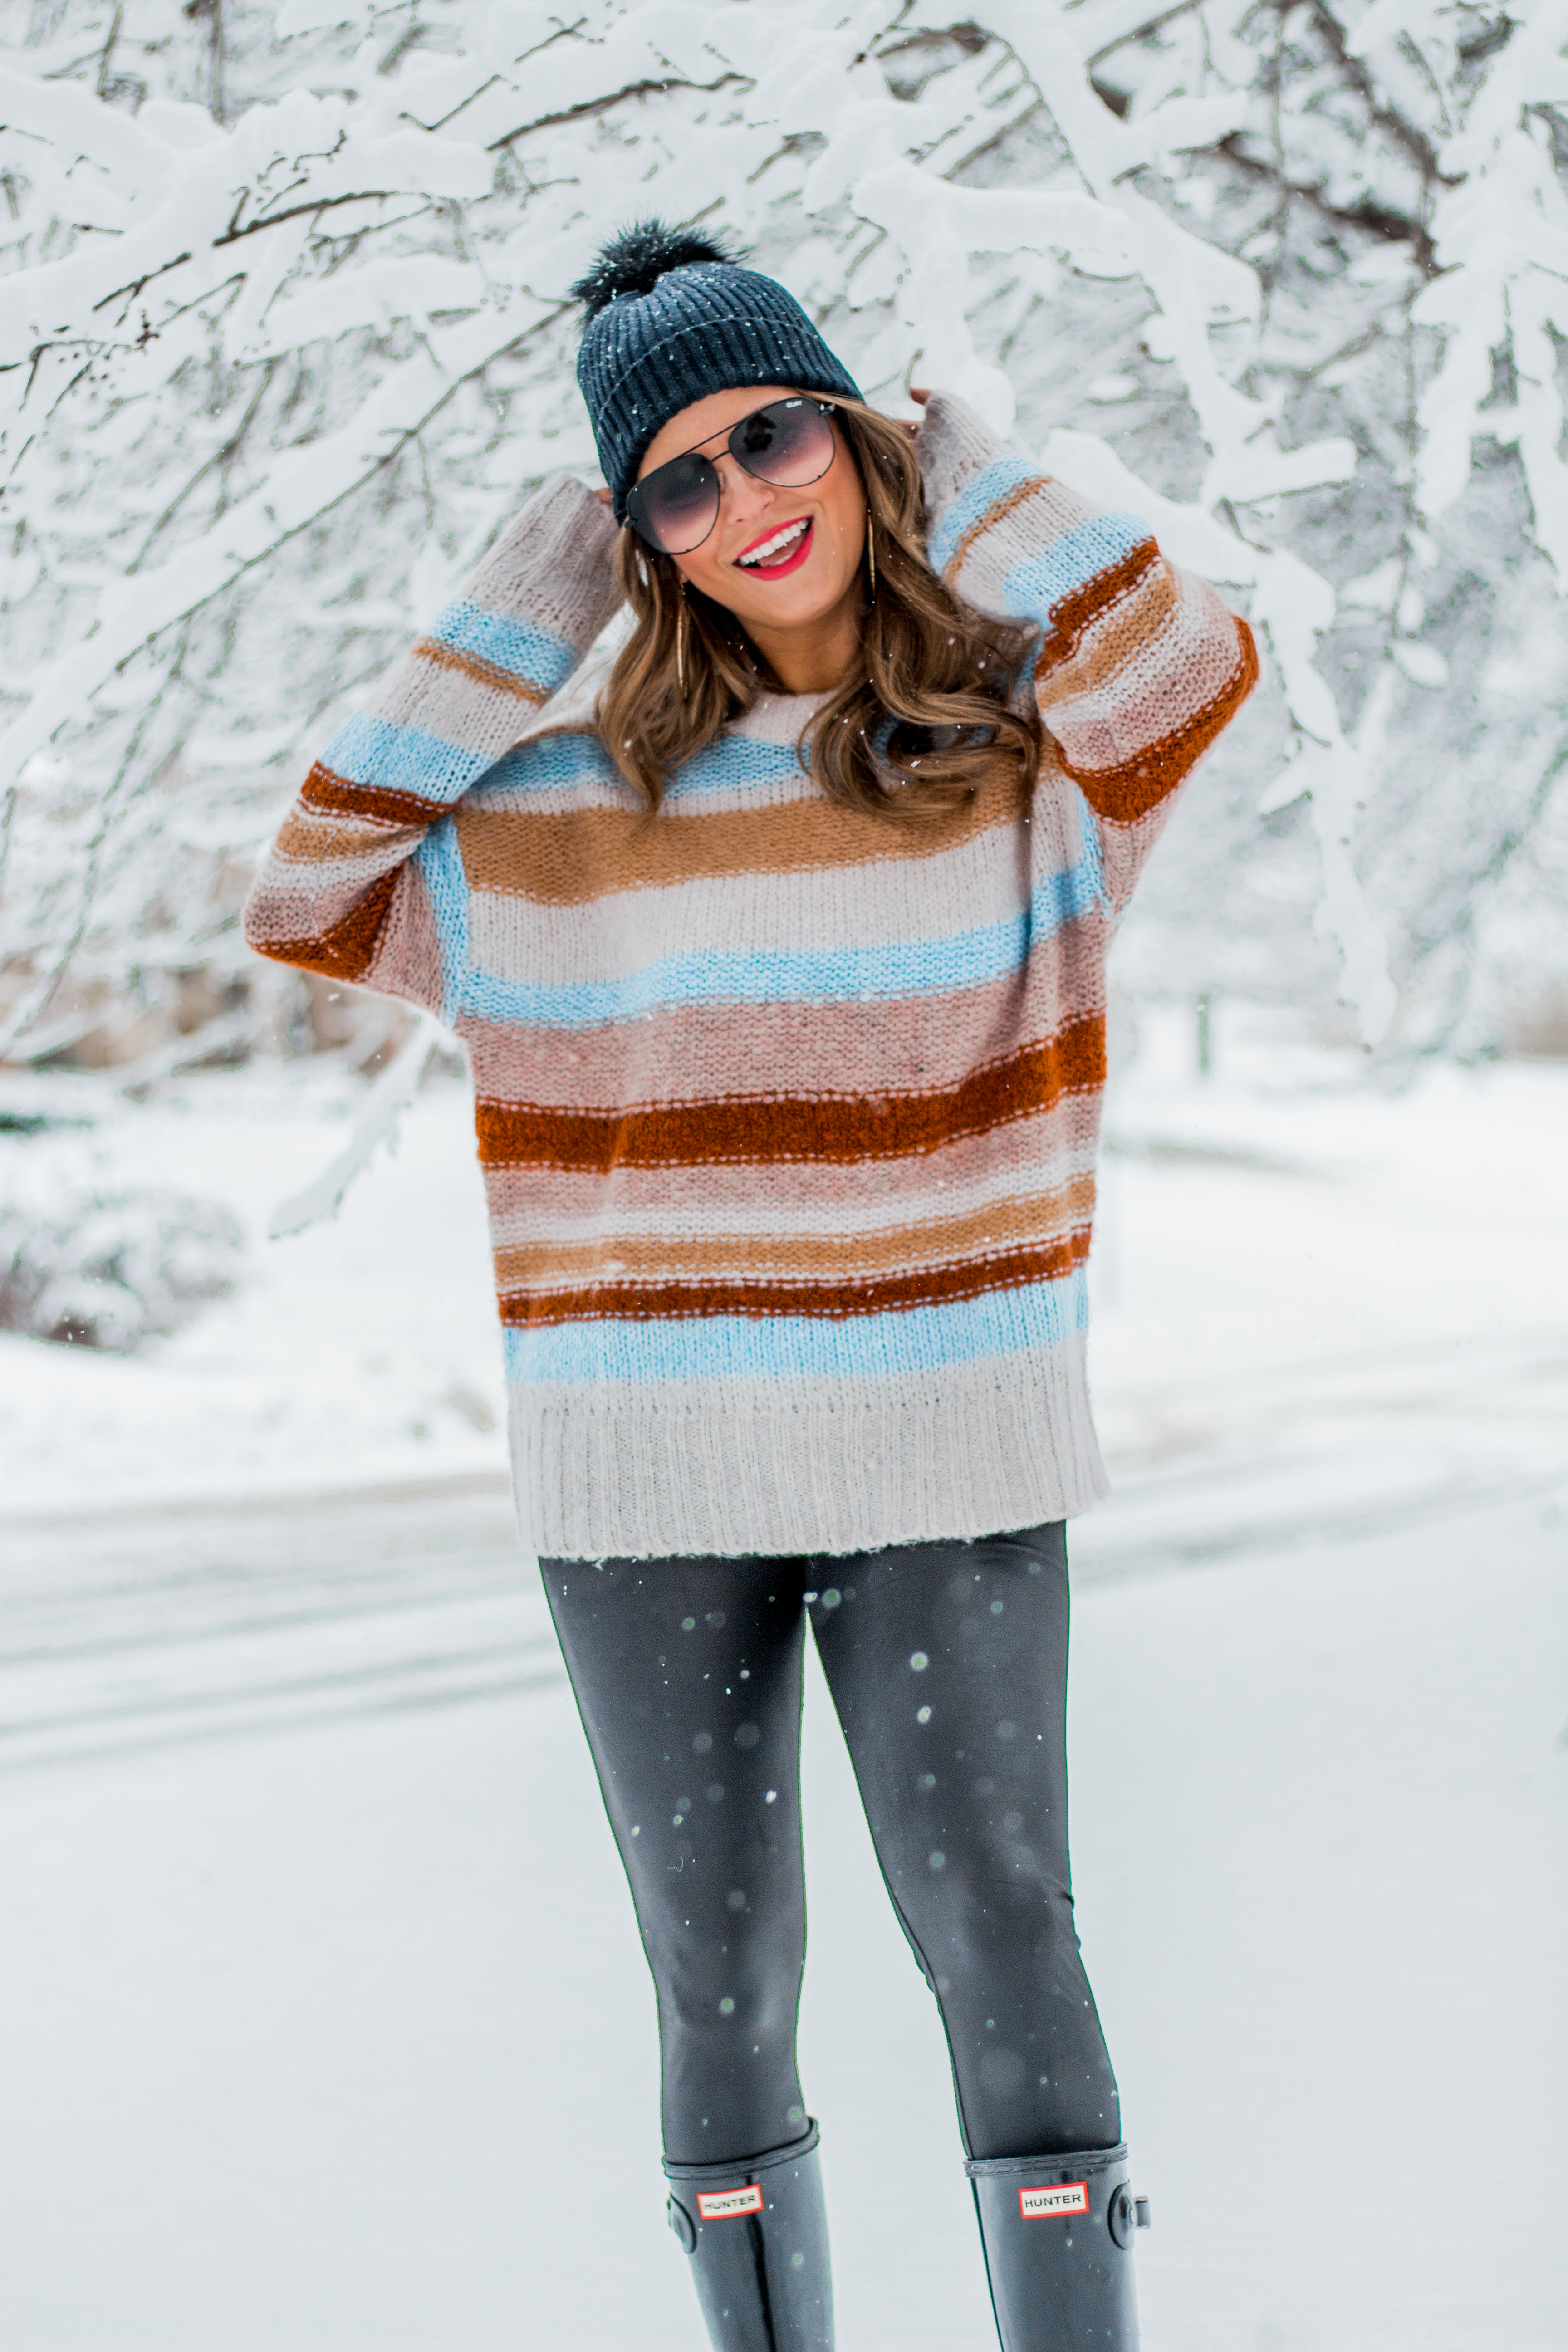 Women's Fashion - American Eagle Sweater - Hunter Boots - Beanie - Snow Day - OOTD - Fashion Blogger - Winter Fashion - 13